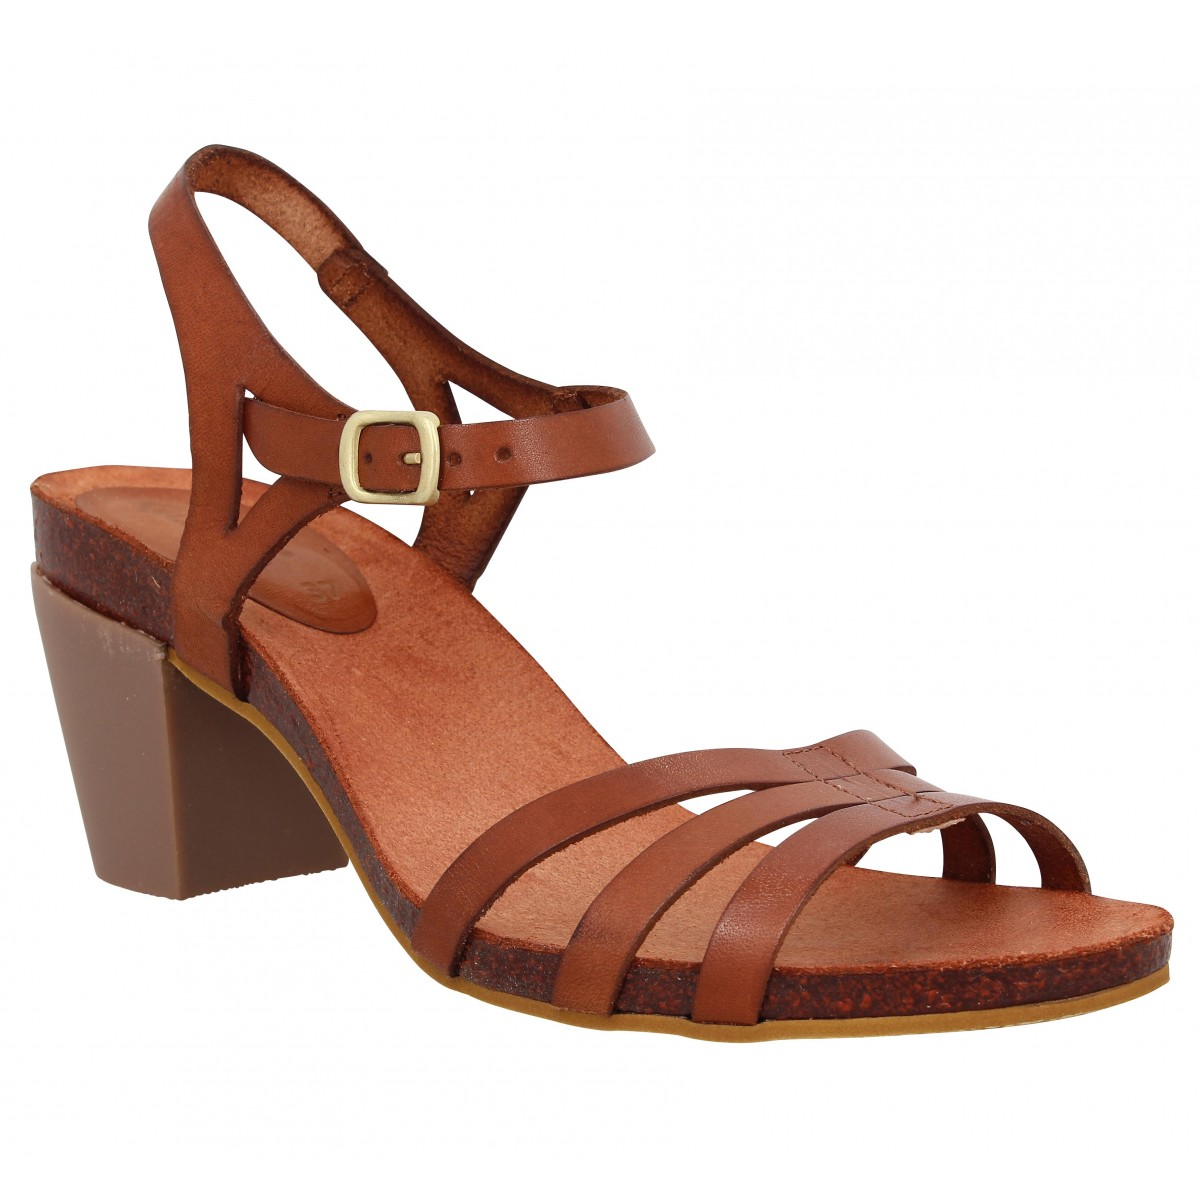 Kickers Femme Pacome Cuir -41-camel